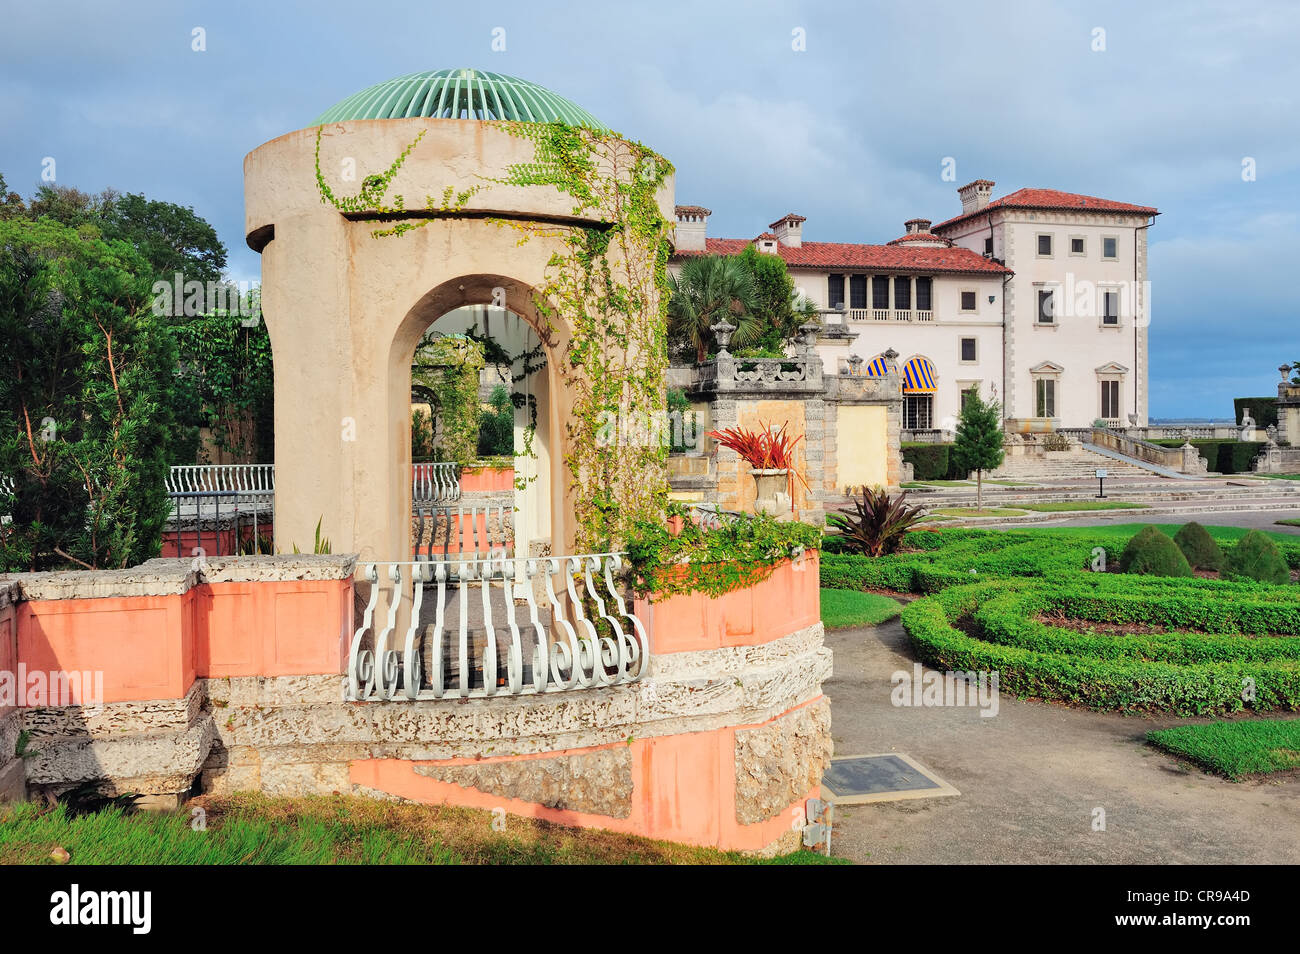 Miami Vizcaya museum garden view Stock Photo 48763357 Alamy